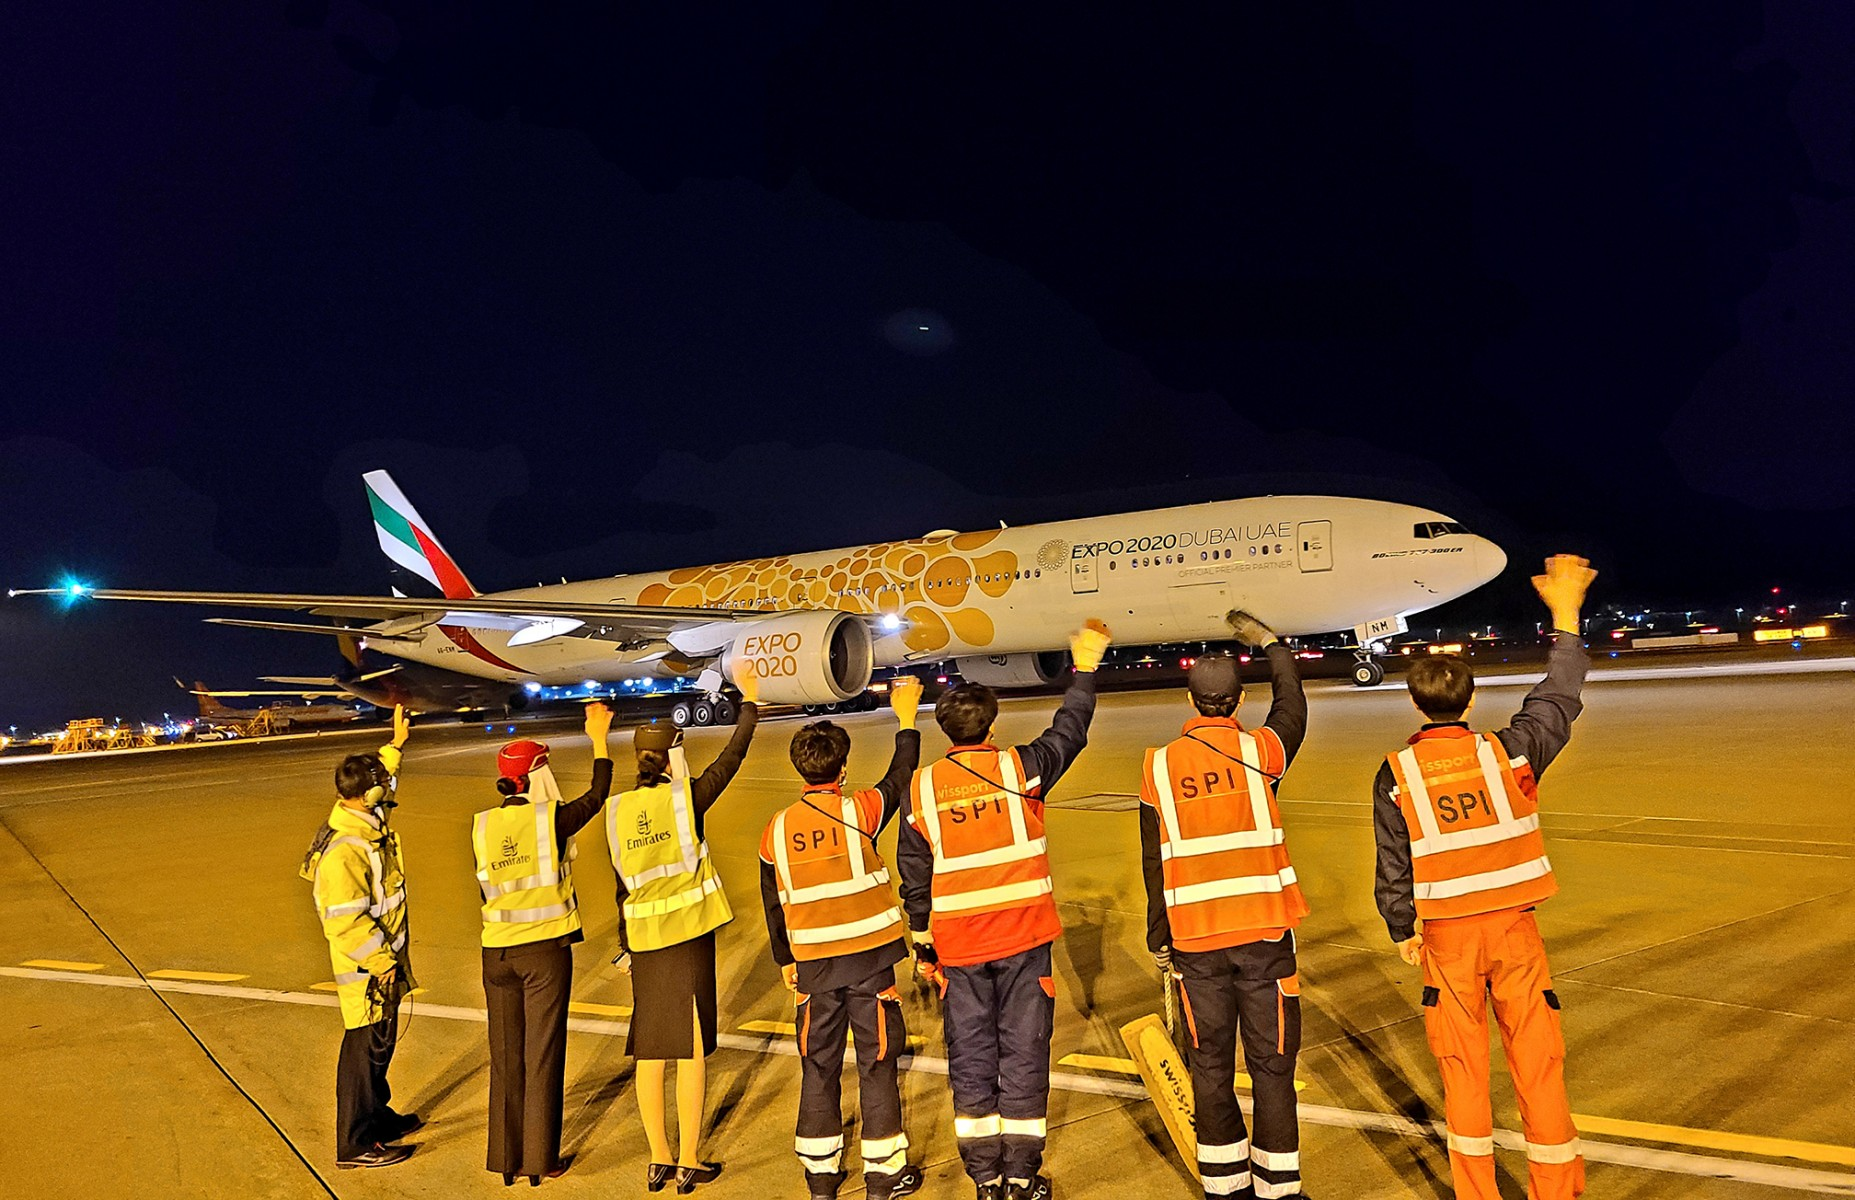 Emirates' outstation airport teams from Seoul devotedly sent of their last passenger flights before the suspension took effect.